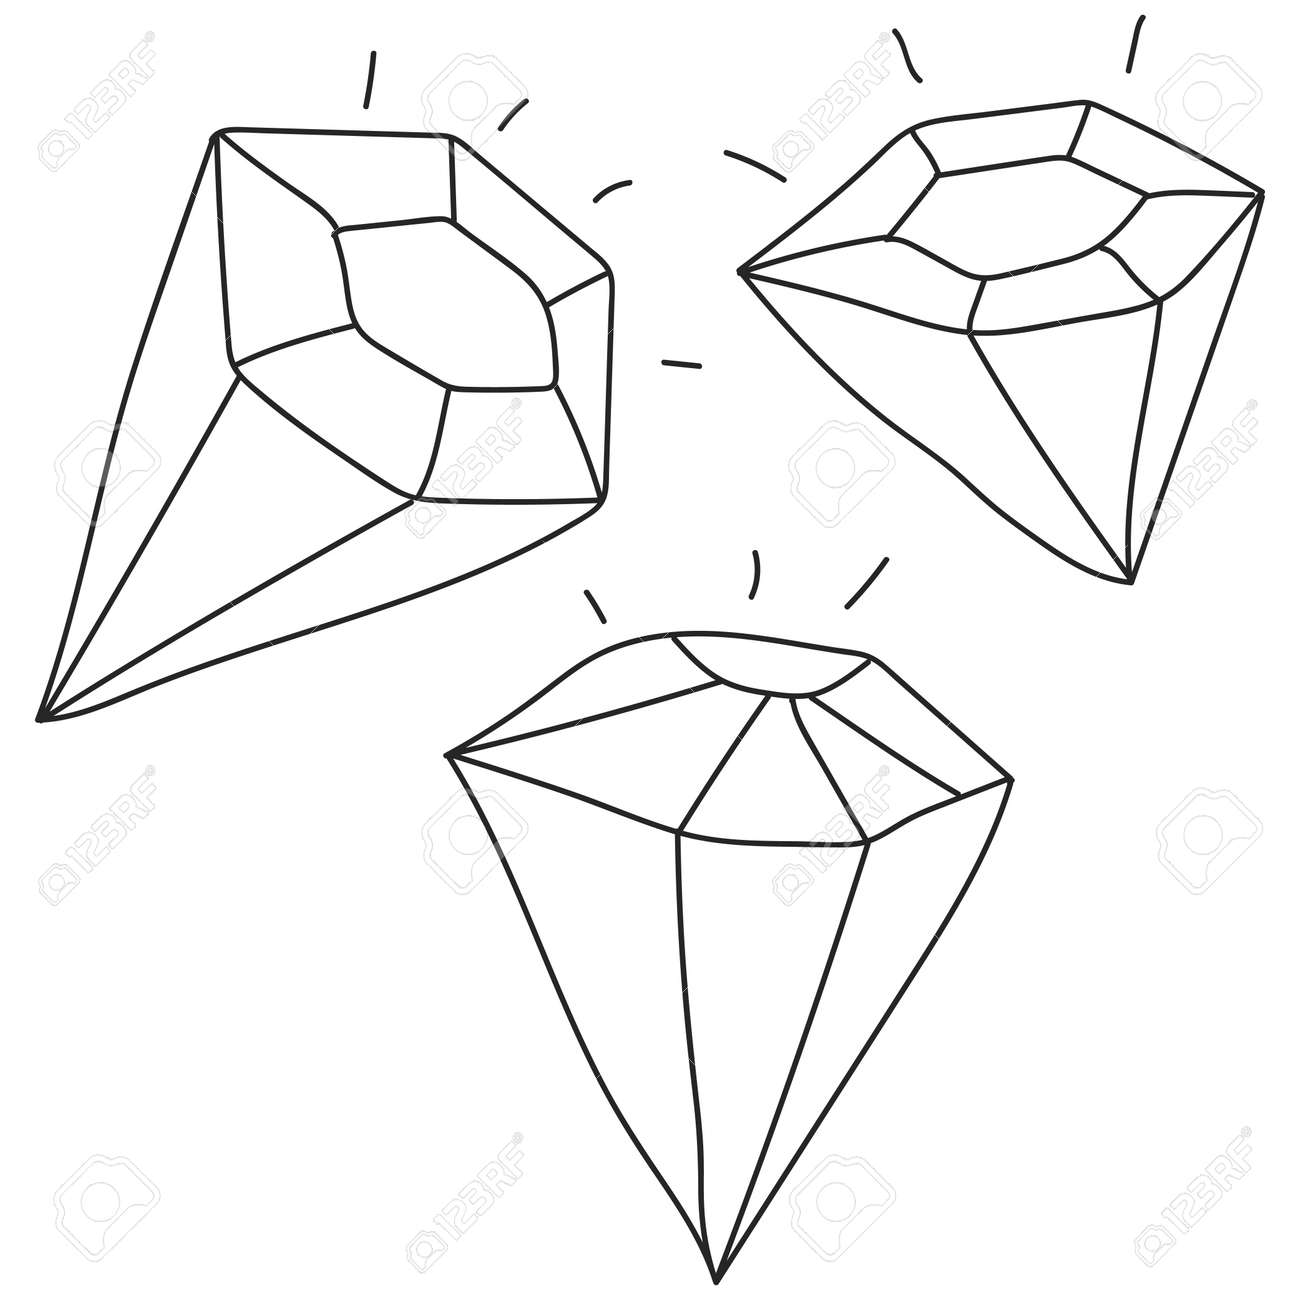 Diamond hand drawn sketch vector set isolated on a white background. - 172749778